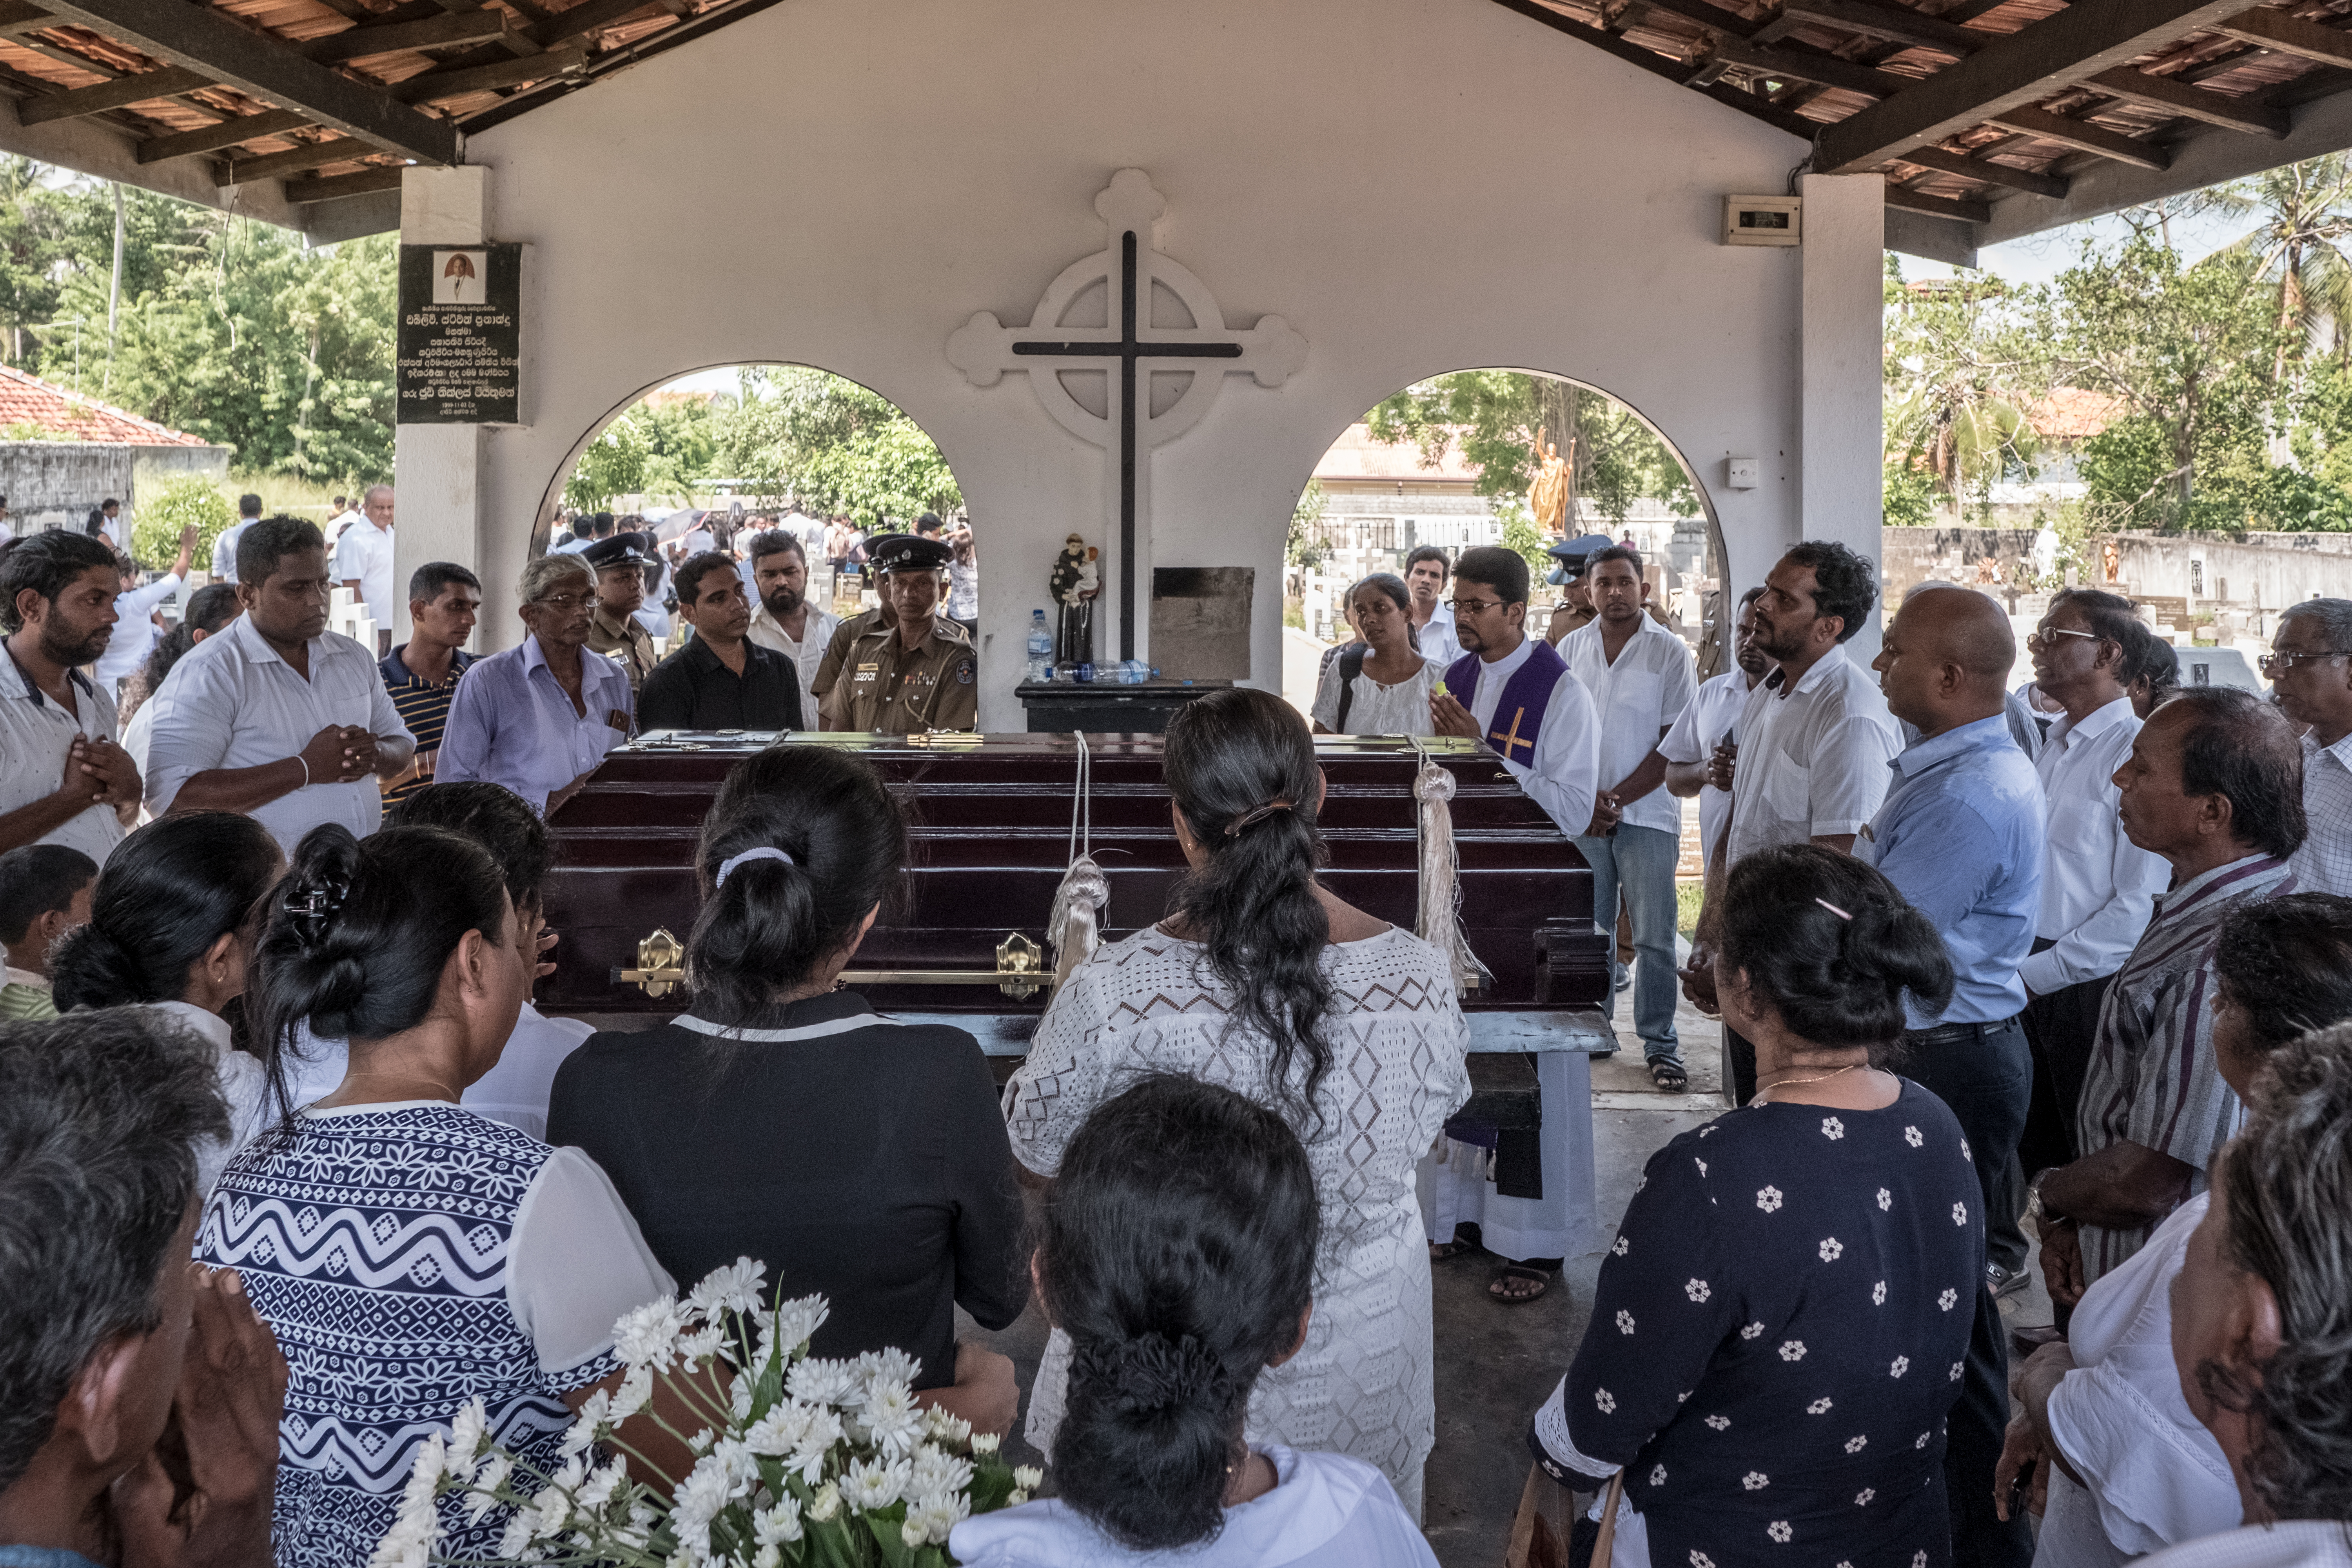 The Sri Lanka bombings are part of an ugly anti-Christian